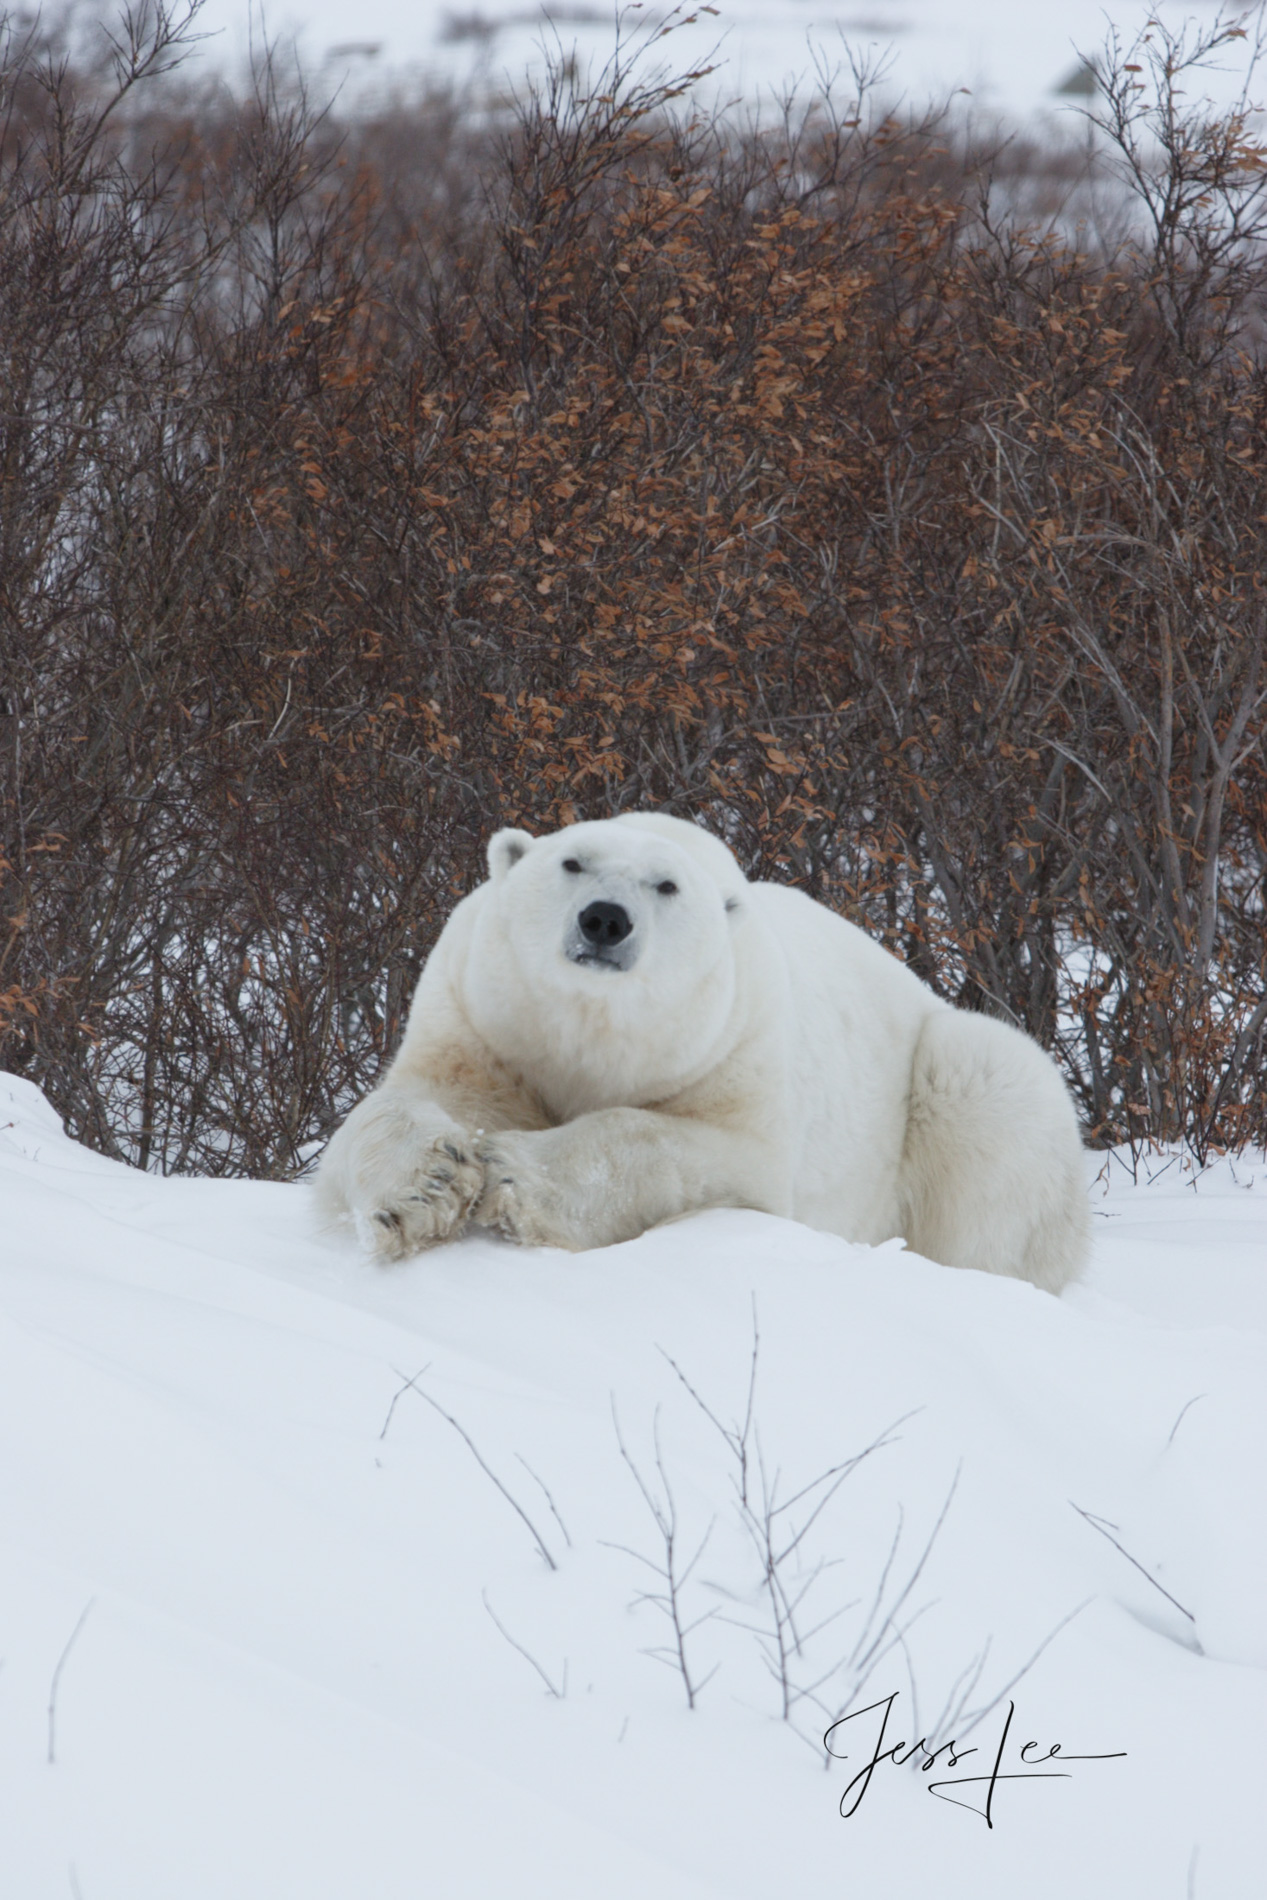 Canada, Hudsons bay, arctic, arctic Canada, bear, bears, churchill, mammal, Manitoba, marine, polar, polar bear, polar bears, photo